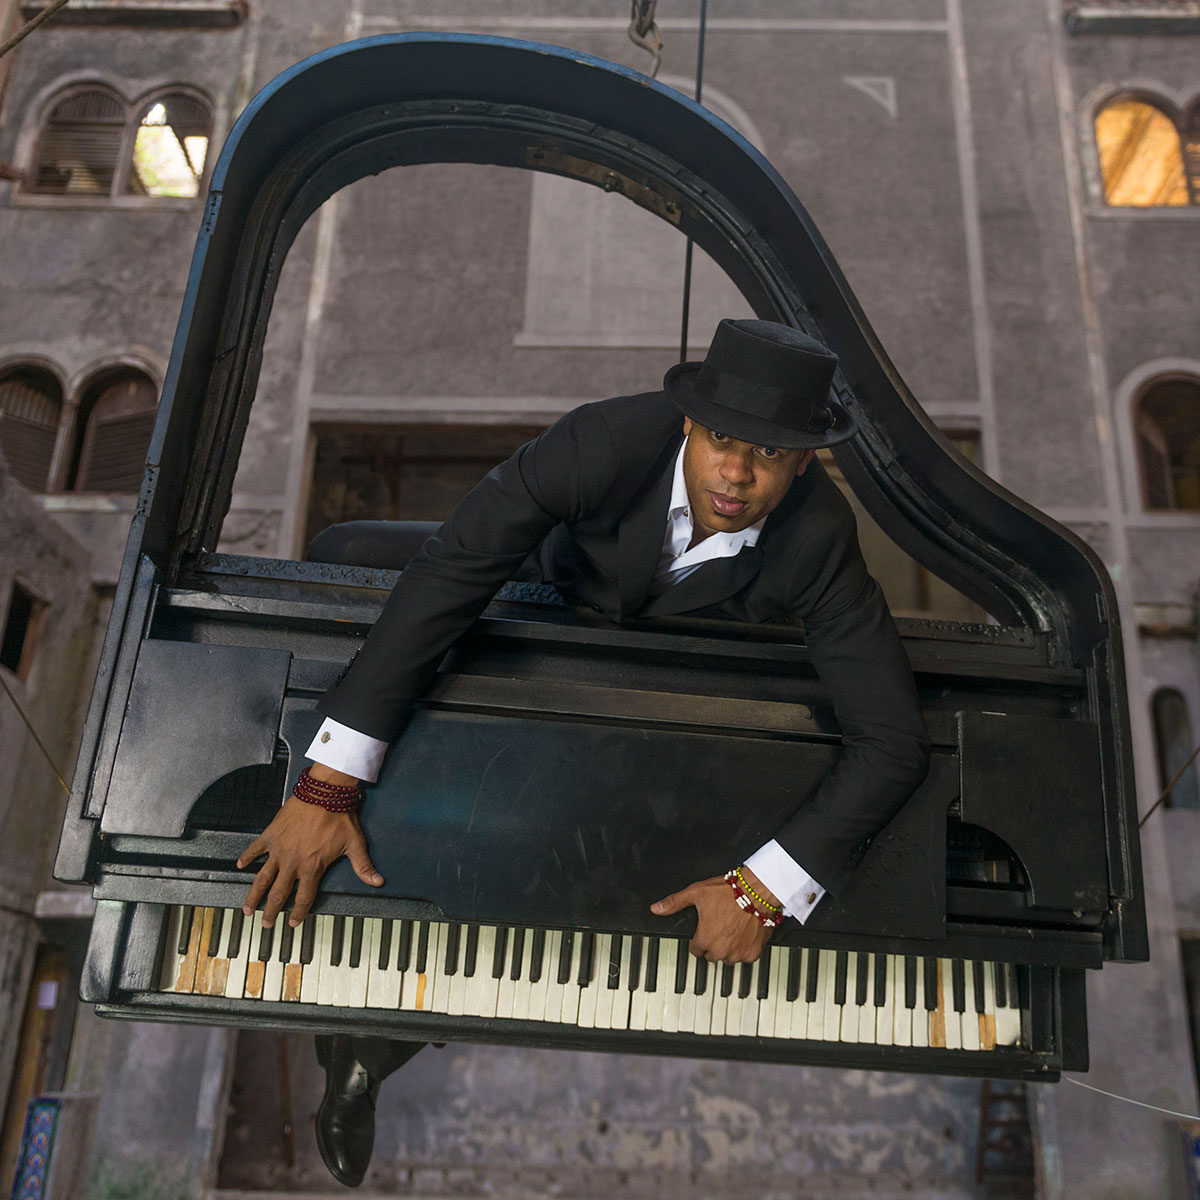 Roberto Fonseca inside a suspended baby grand piano.